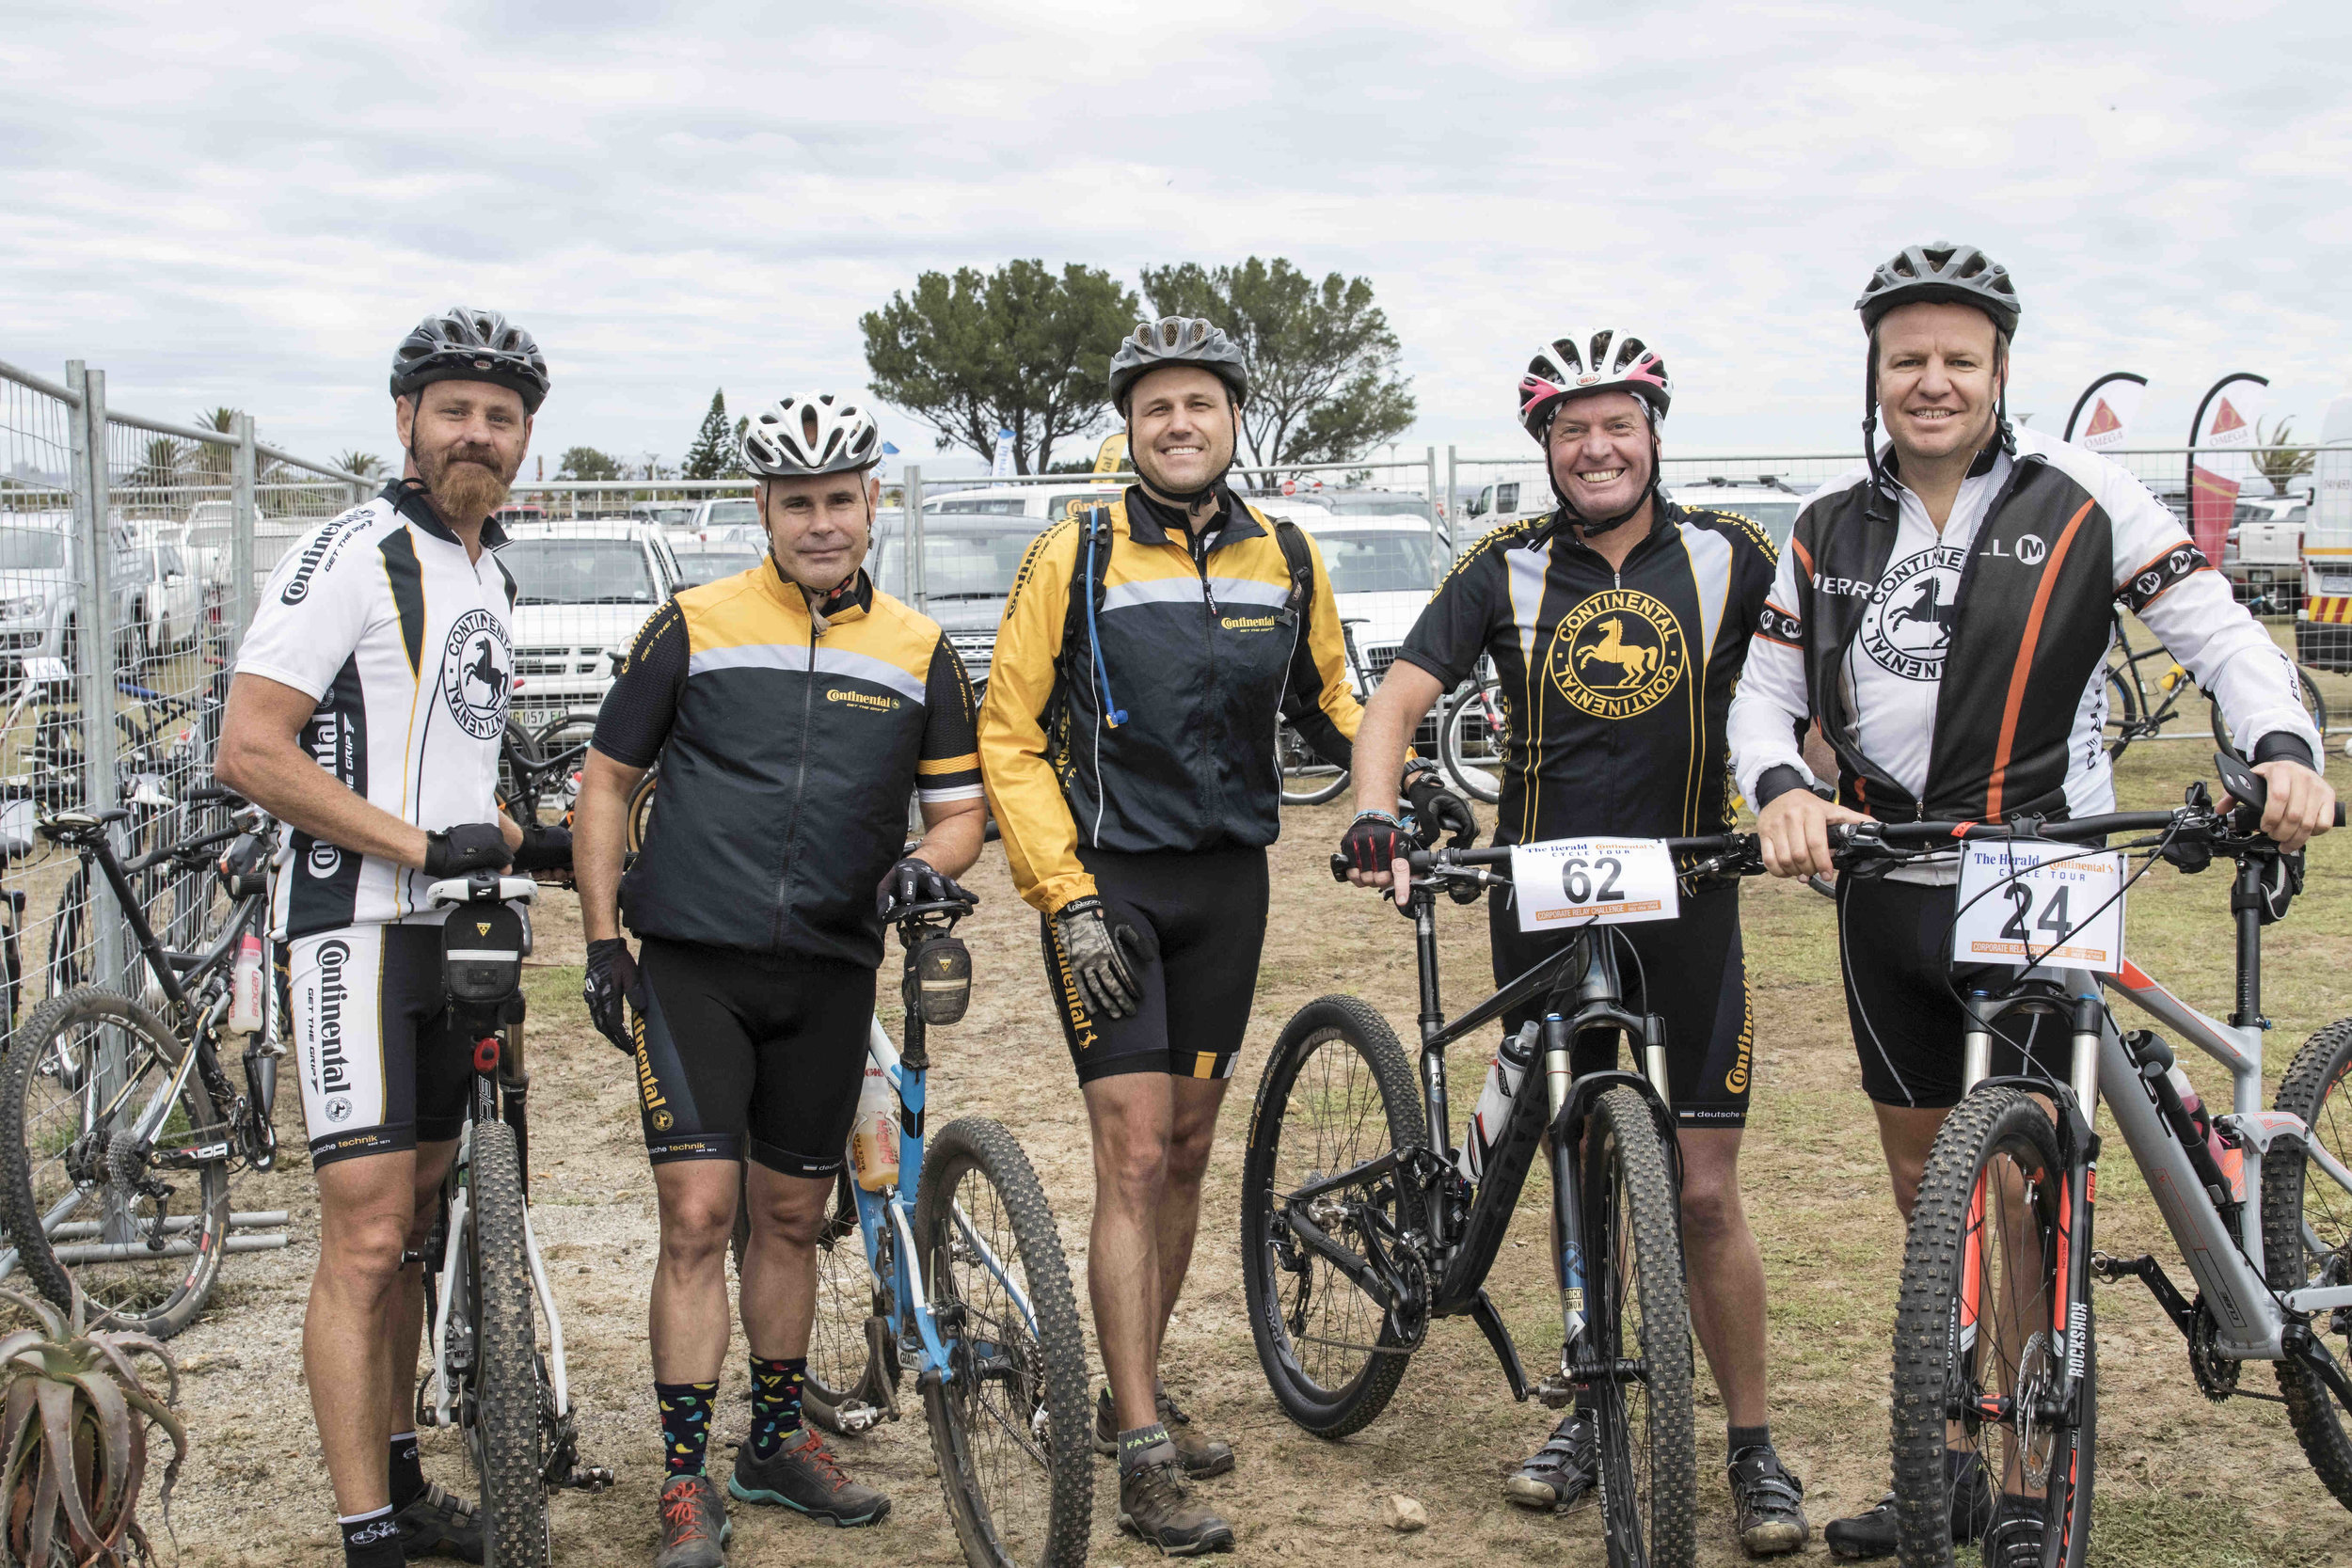 Showcasing a competitive edge at this year's Team Relay Challenge were Continental Tyre SA team riders from left Anton Verwey; Ian Langlands; Austin Brett; Trevor Gascoyne; Clint Henderson. Continental Tyre SA look forward battling it out at the 3rd edition of the Team Relay race next year.